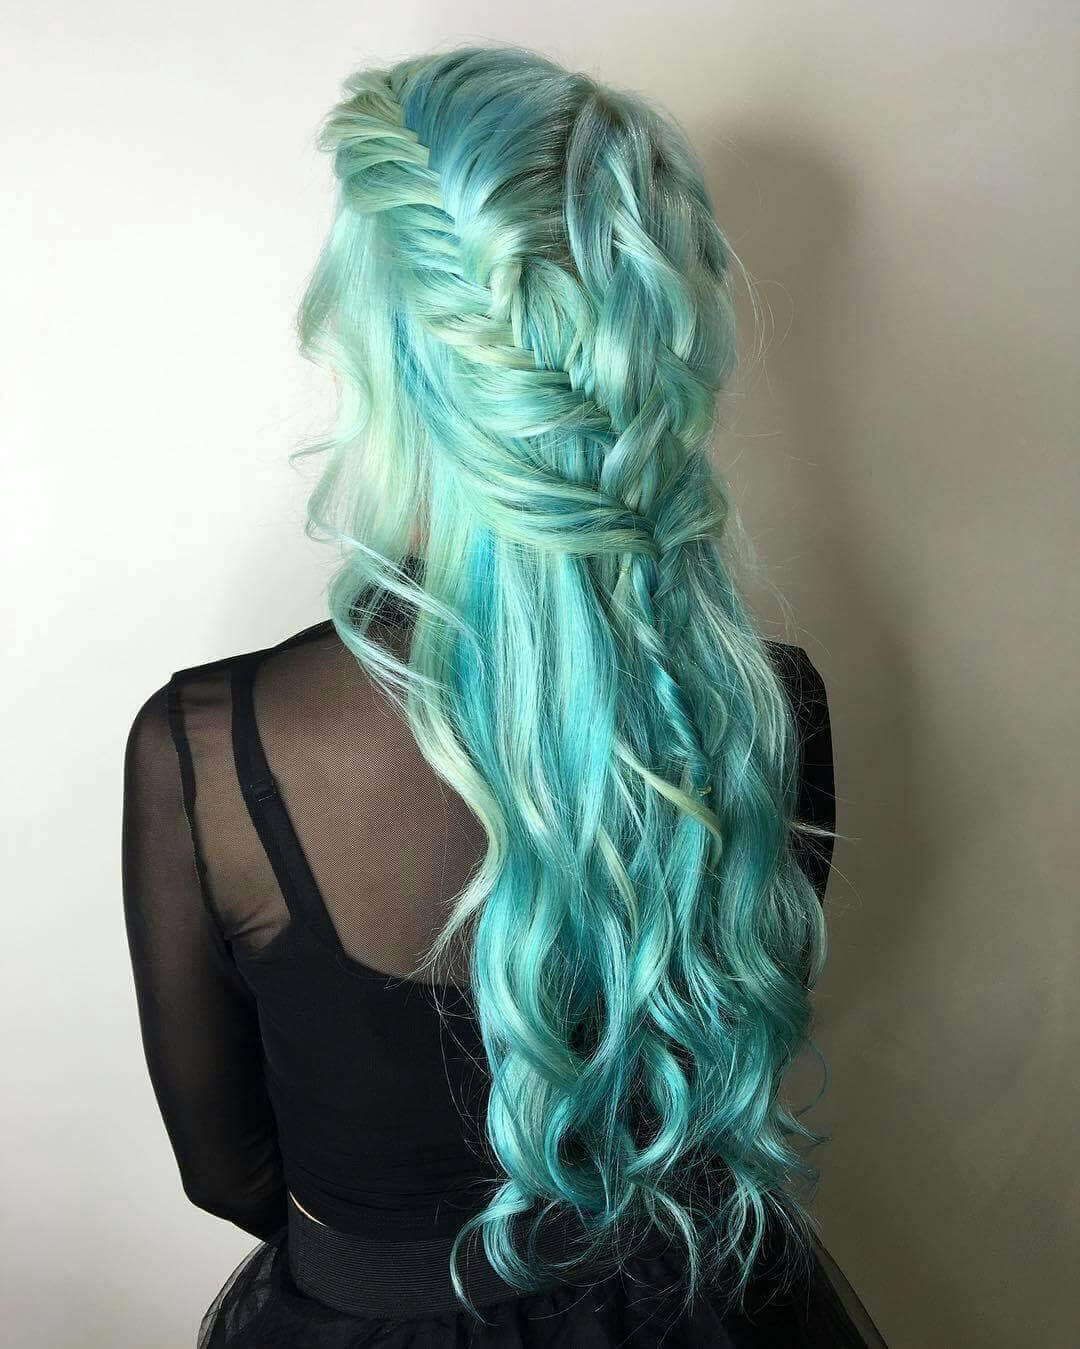 Braided and Curled Turquoise Hair